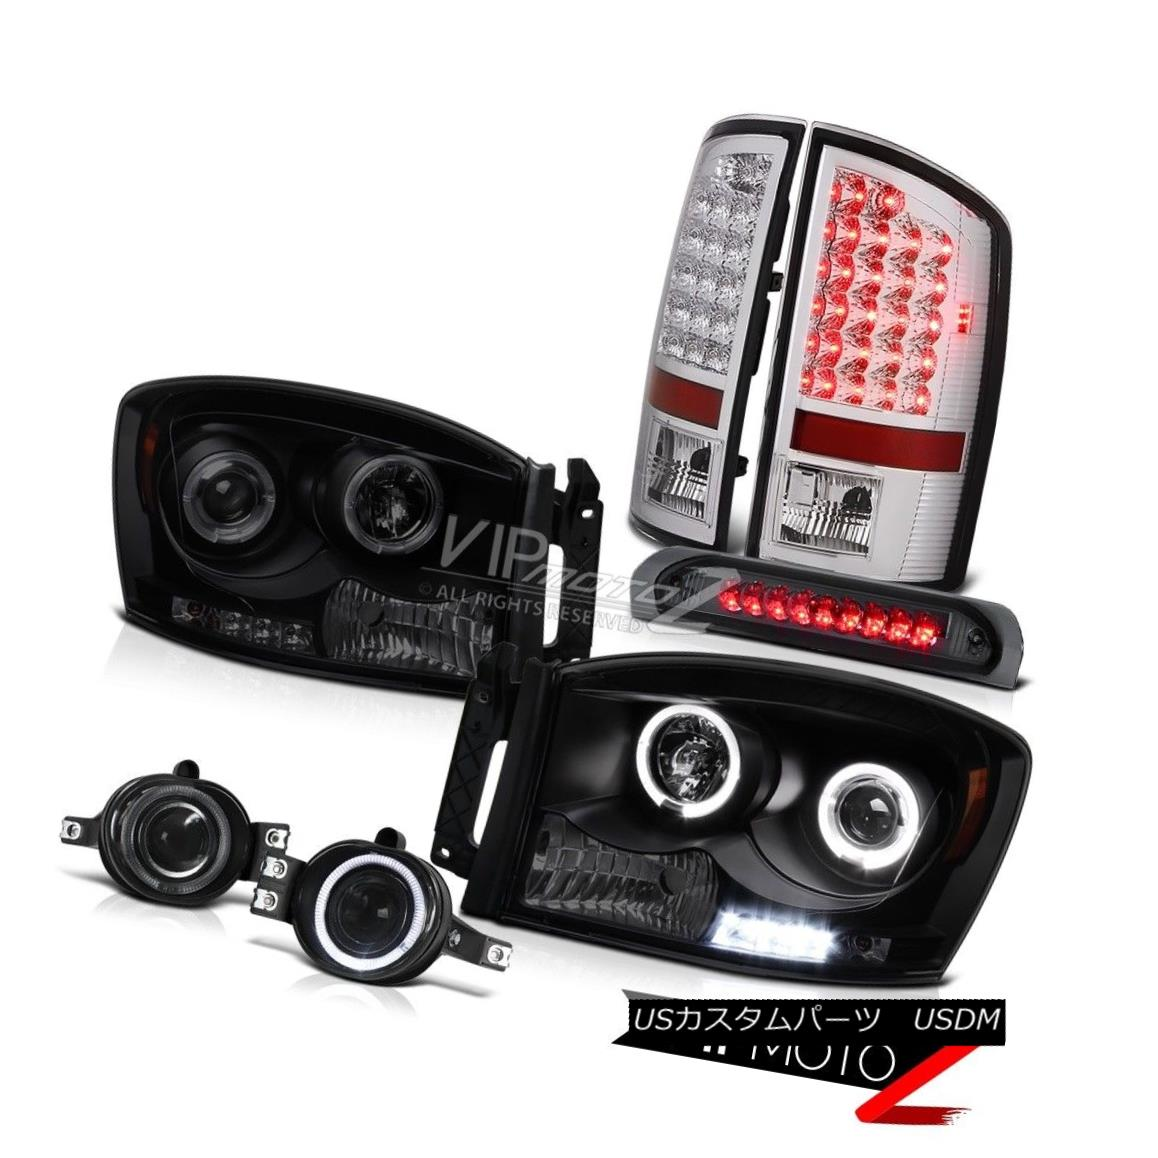 ヘッドライト 2X Angel Eye Headlight Brake Lamp Taillights Foglights Third LED Ram 5.7L 07 08 2XエンジェルアイヘッドライトブレーキランプテールライトFoglights Third LED Ram 5.7L 07 08